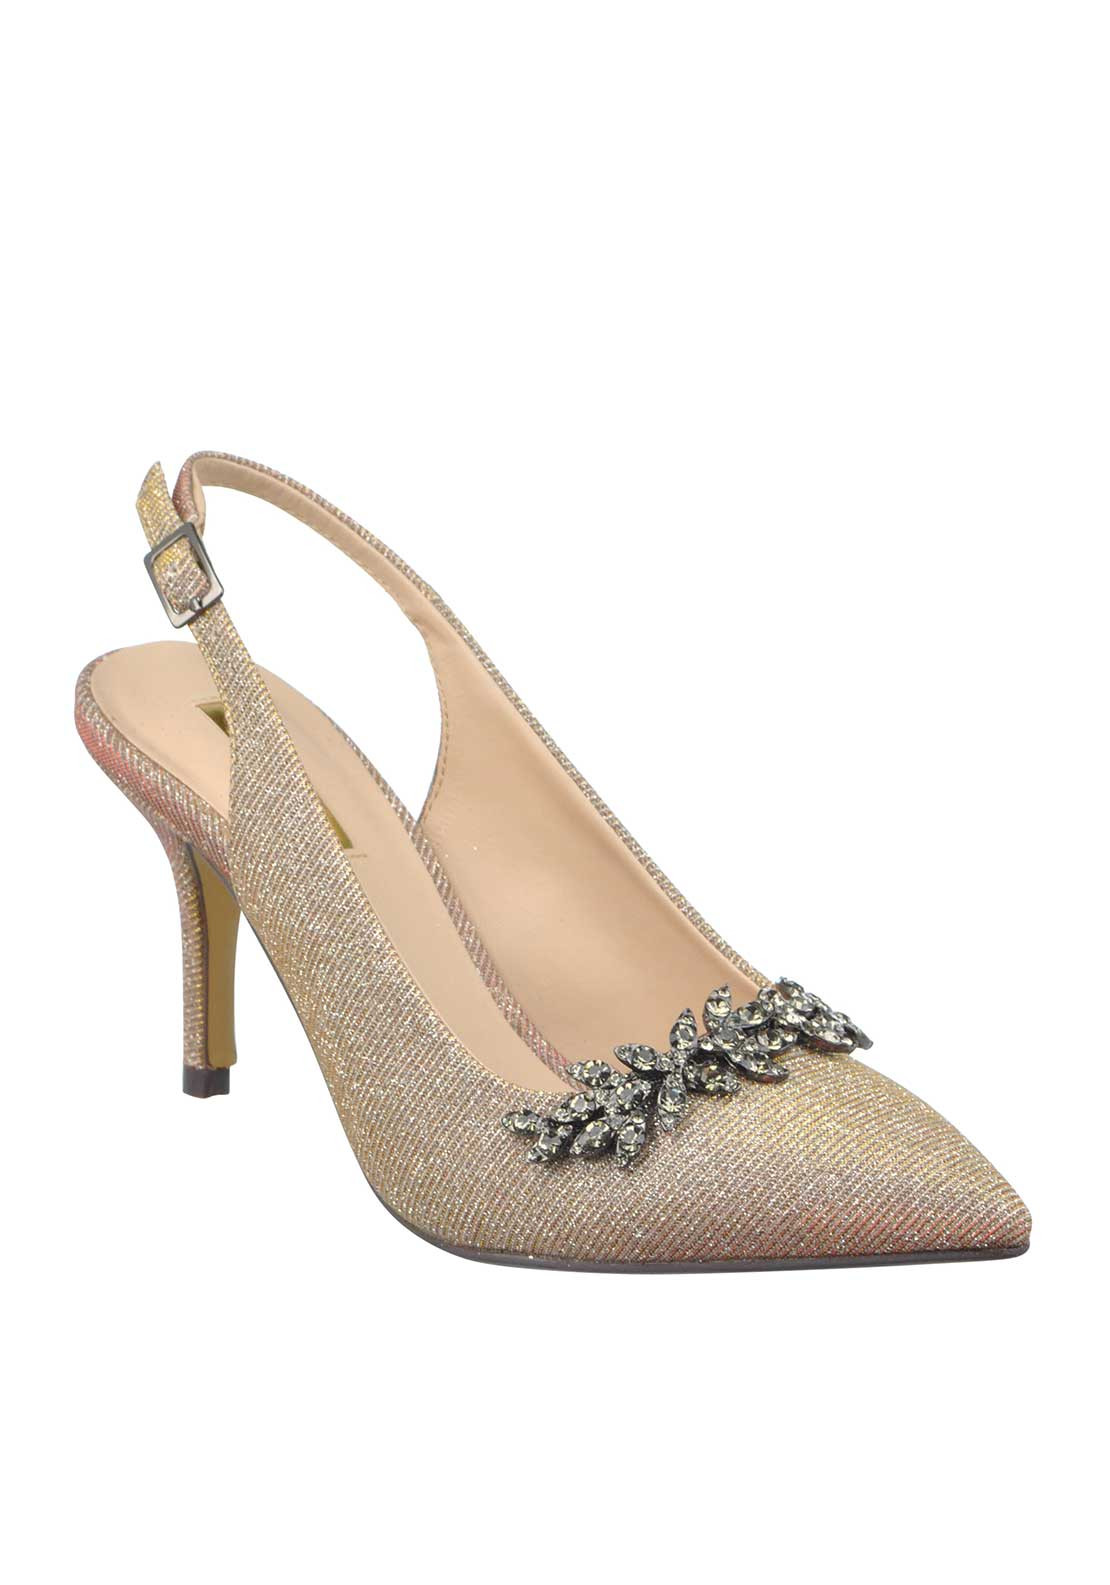 Glamour Shimmer Embellished Pointed Toe Sling Back Heeled Shoes, Nude